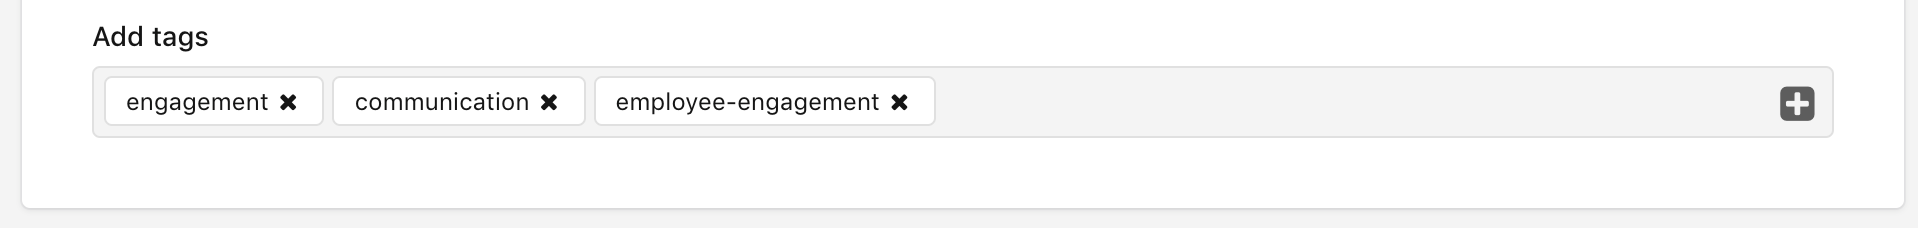 Adding tags to content